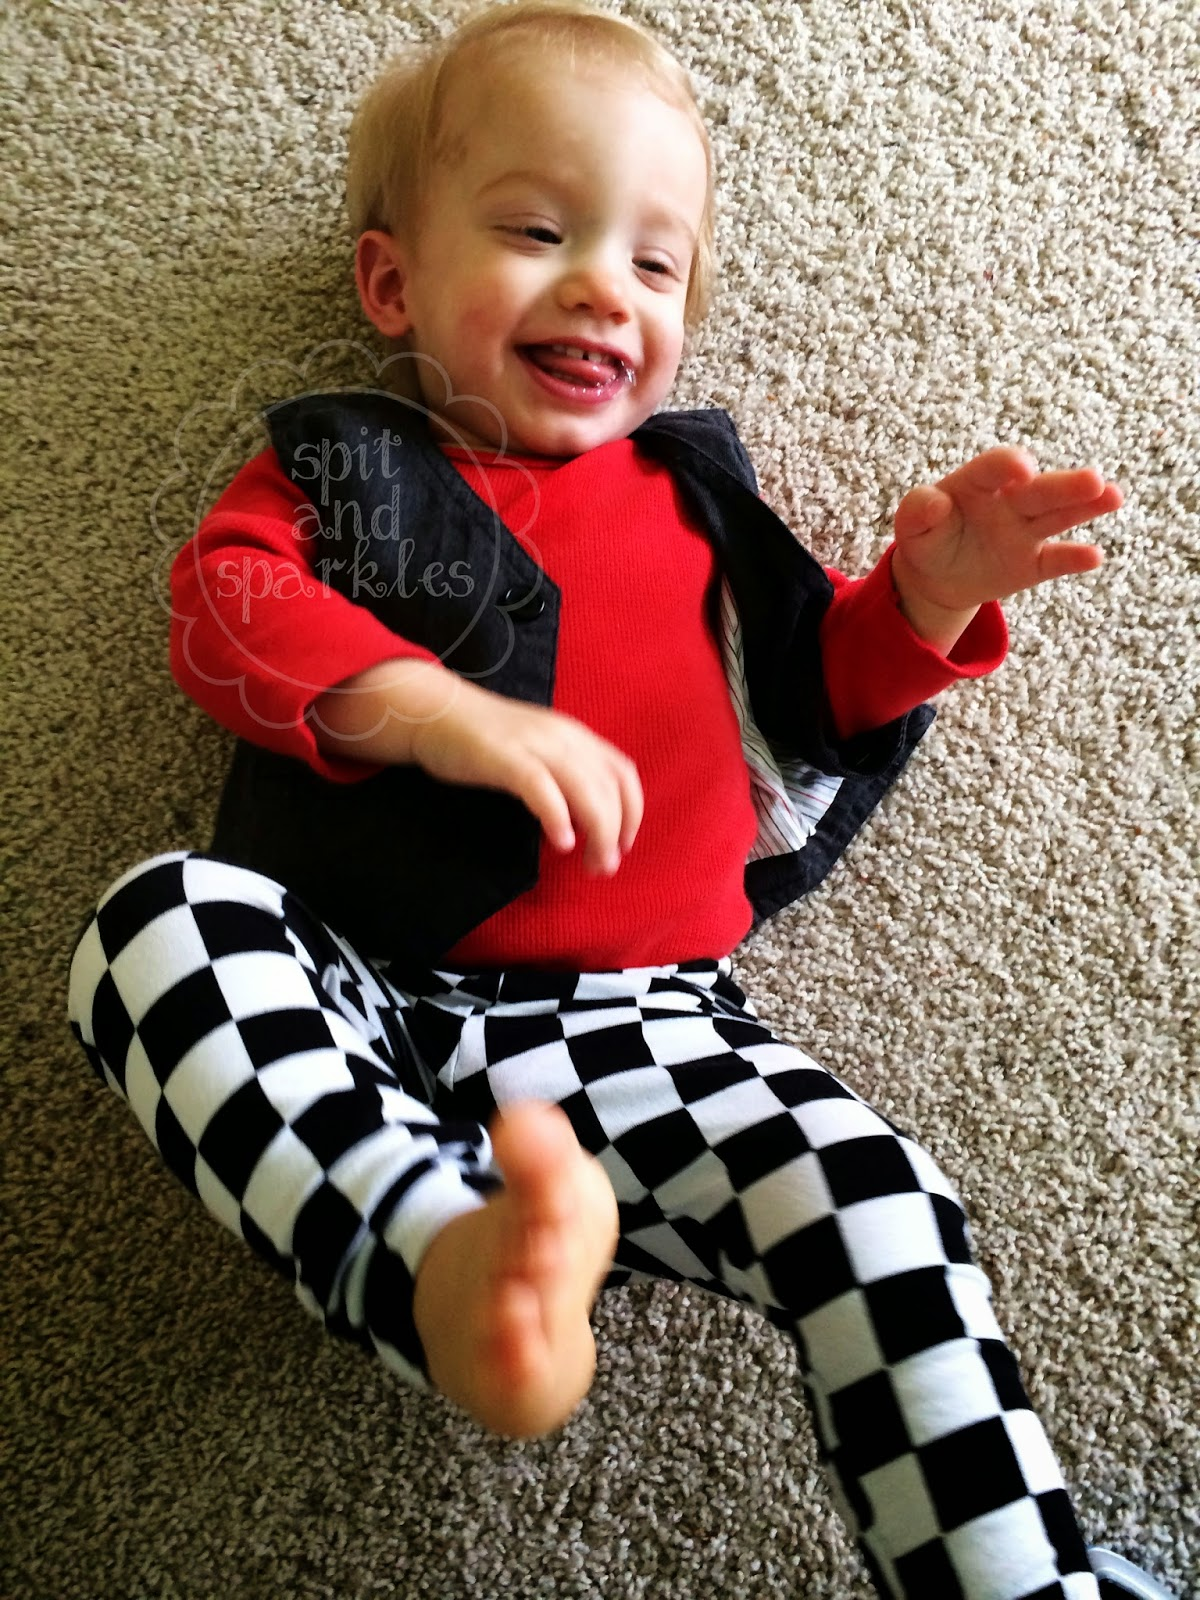 Enter to #win a pair of trendy baby leggings from Sweet Lucy Jack + lots more in Spit and Sparkles' blogiversary giveaway! #trendybaby #fashionforbabies #giveaway #blogiversary (Ends 3/30)